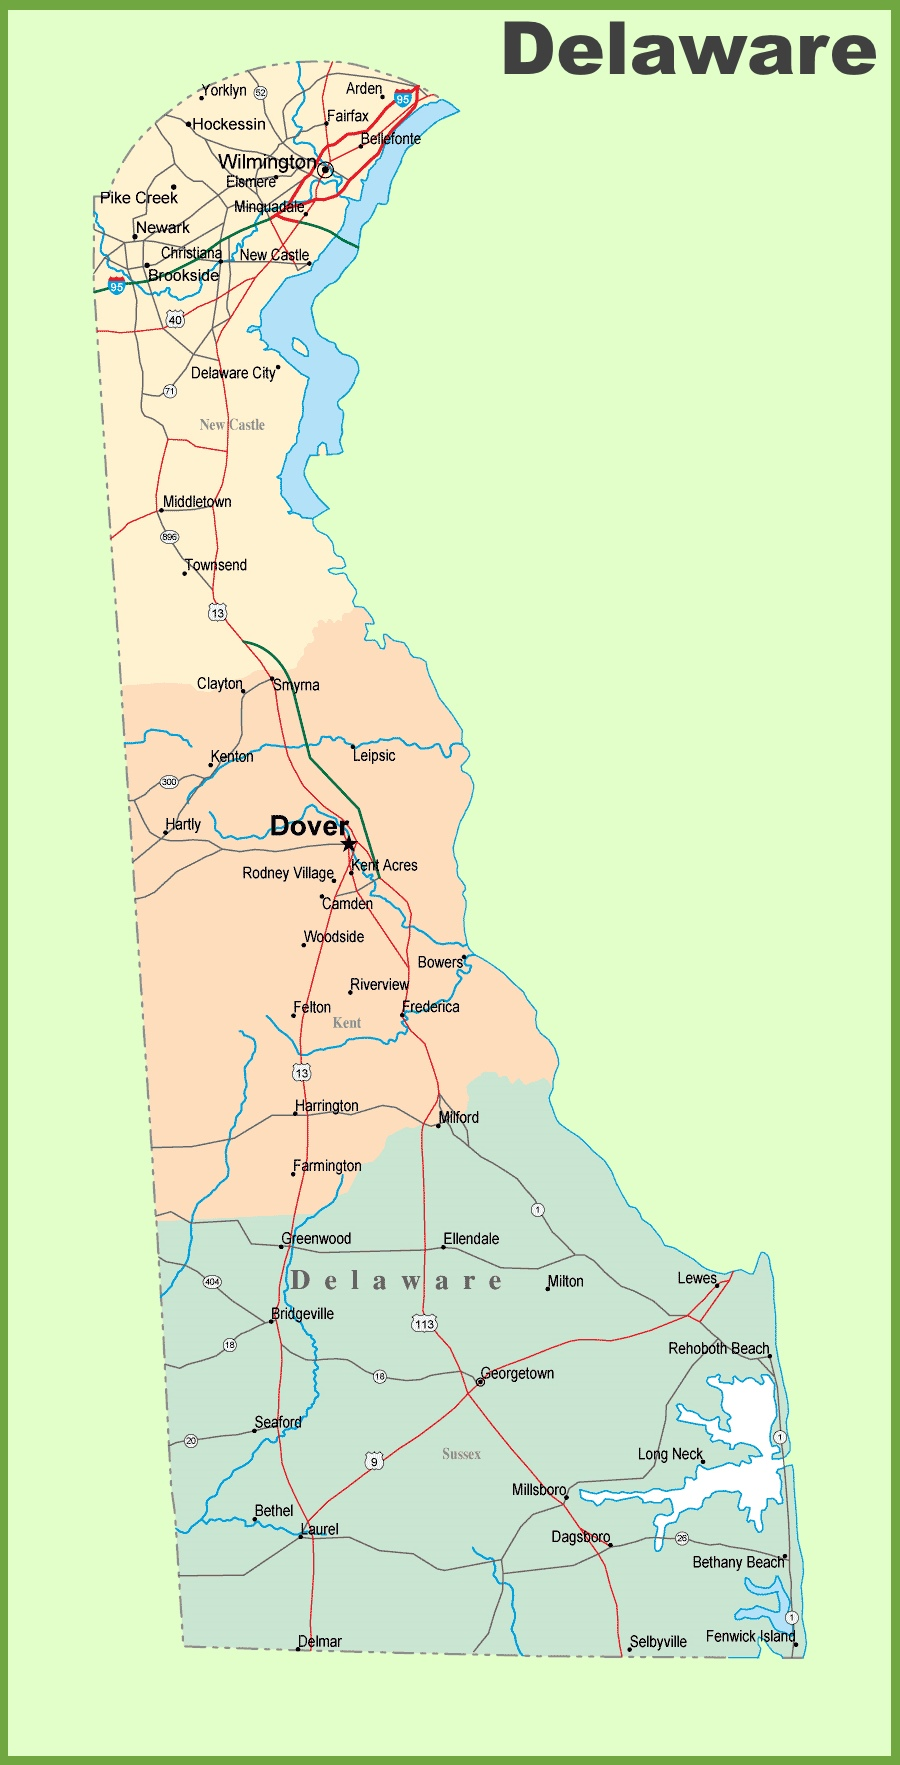 Map Of Delaware With Cities And Towns - Delaware cities map